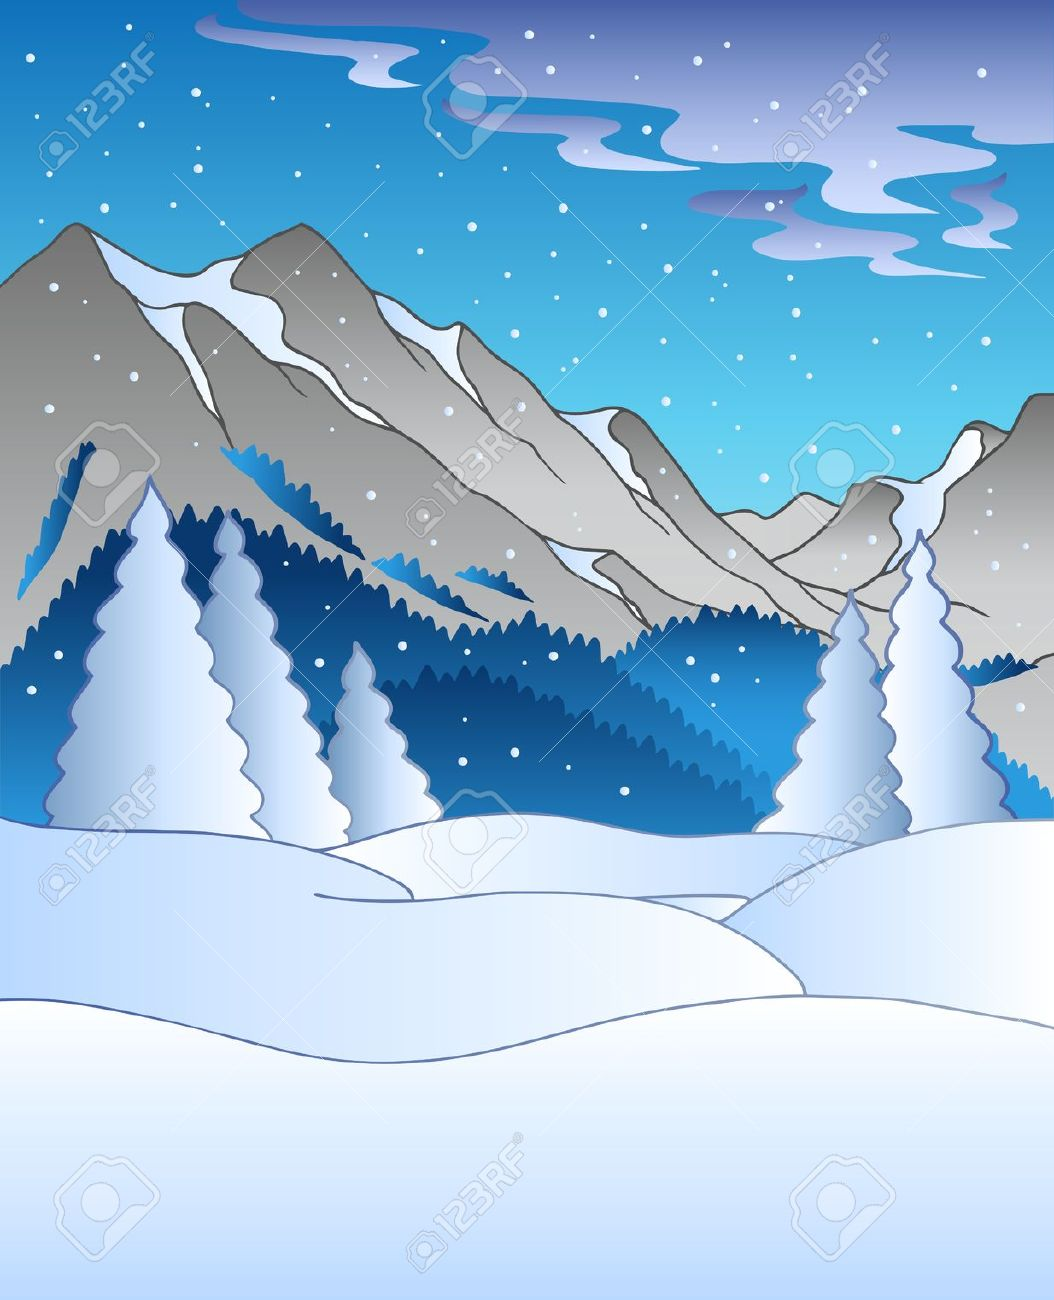 Drawn mountain mountain climbing Clip Clipart Mountain Winter Art